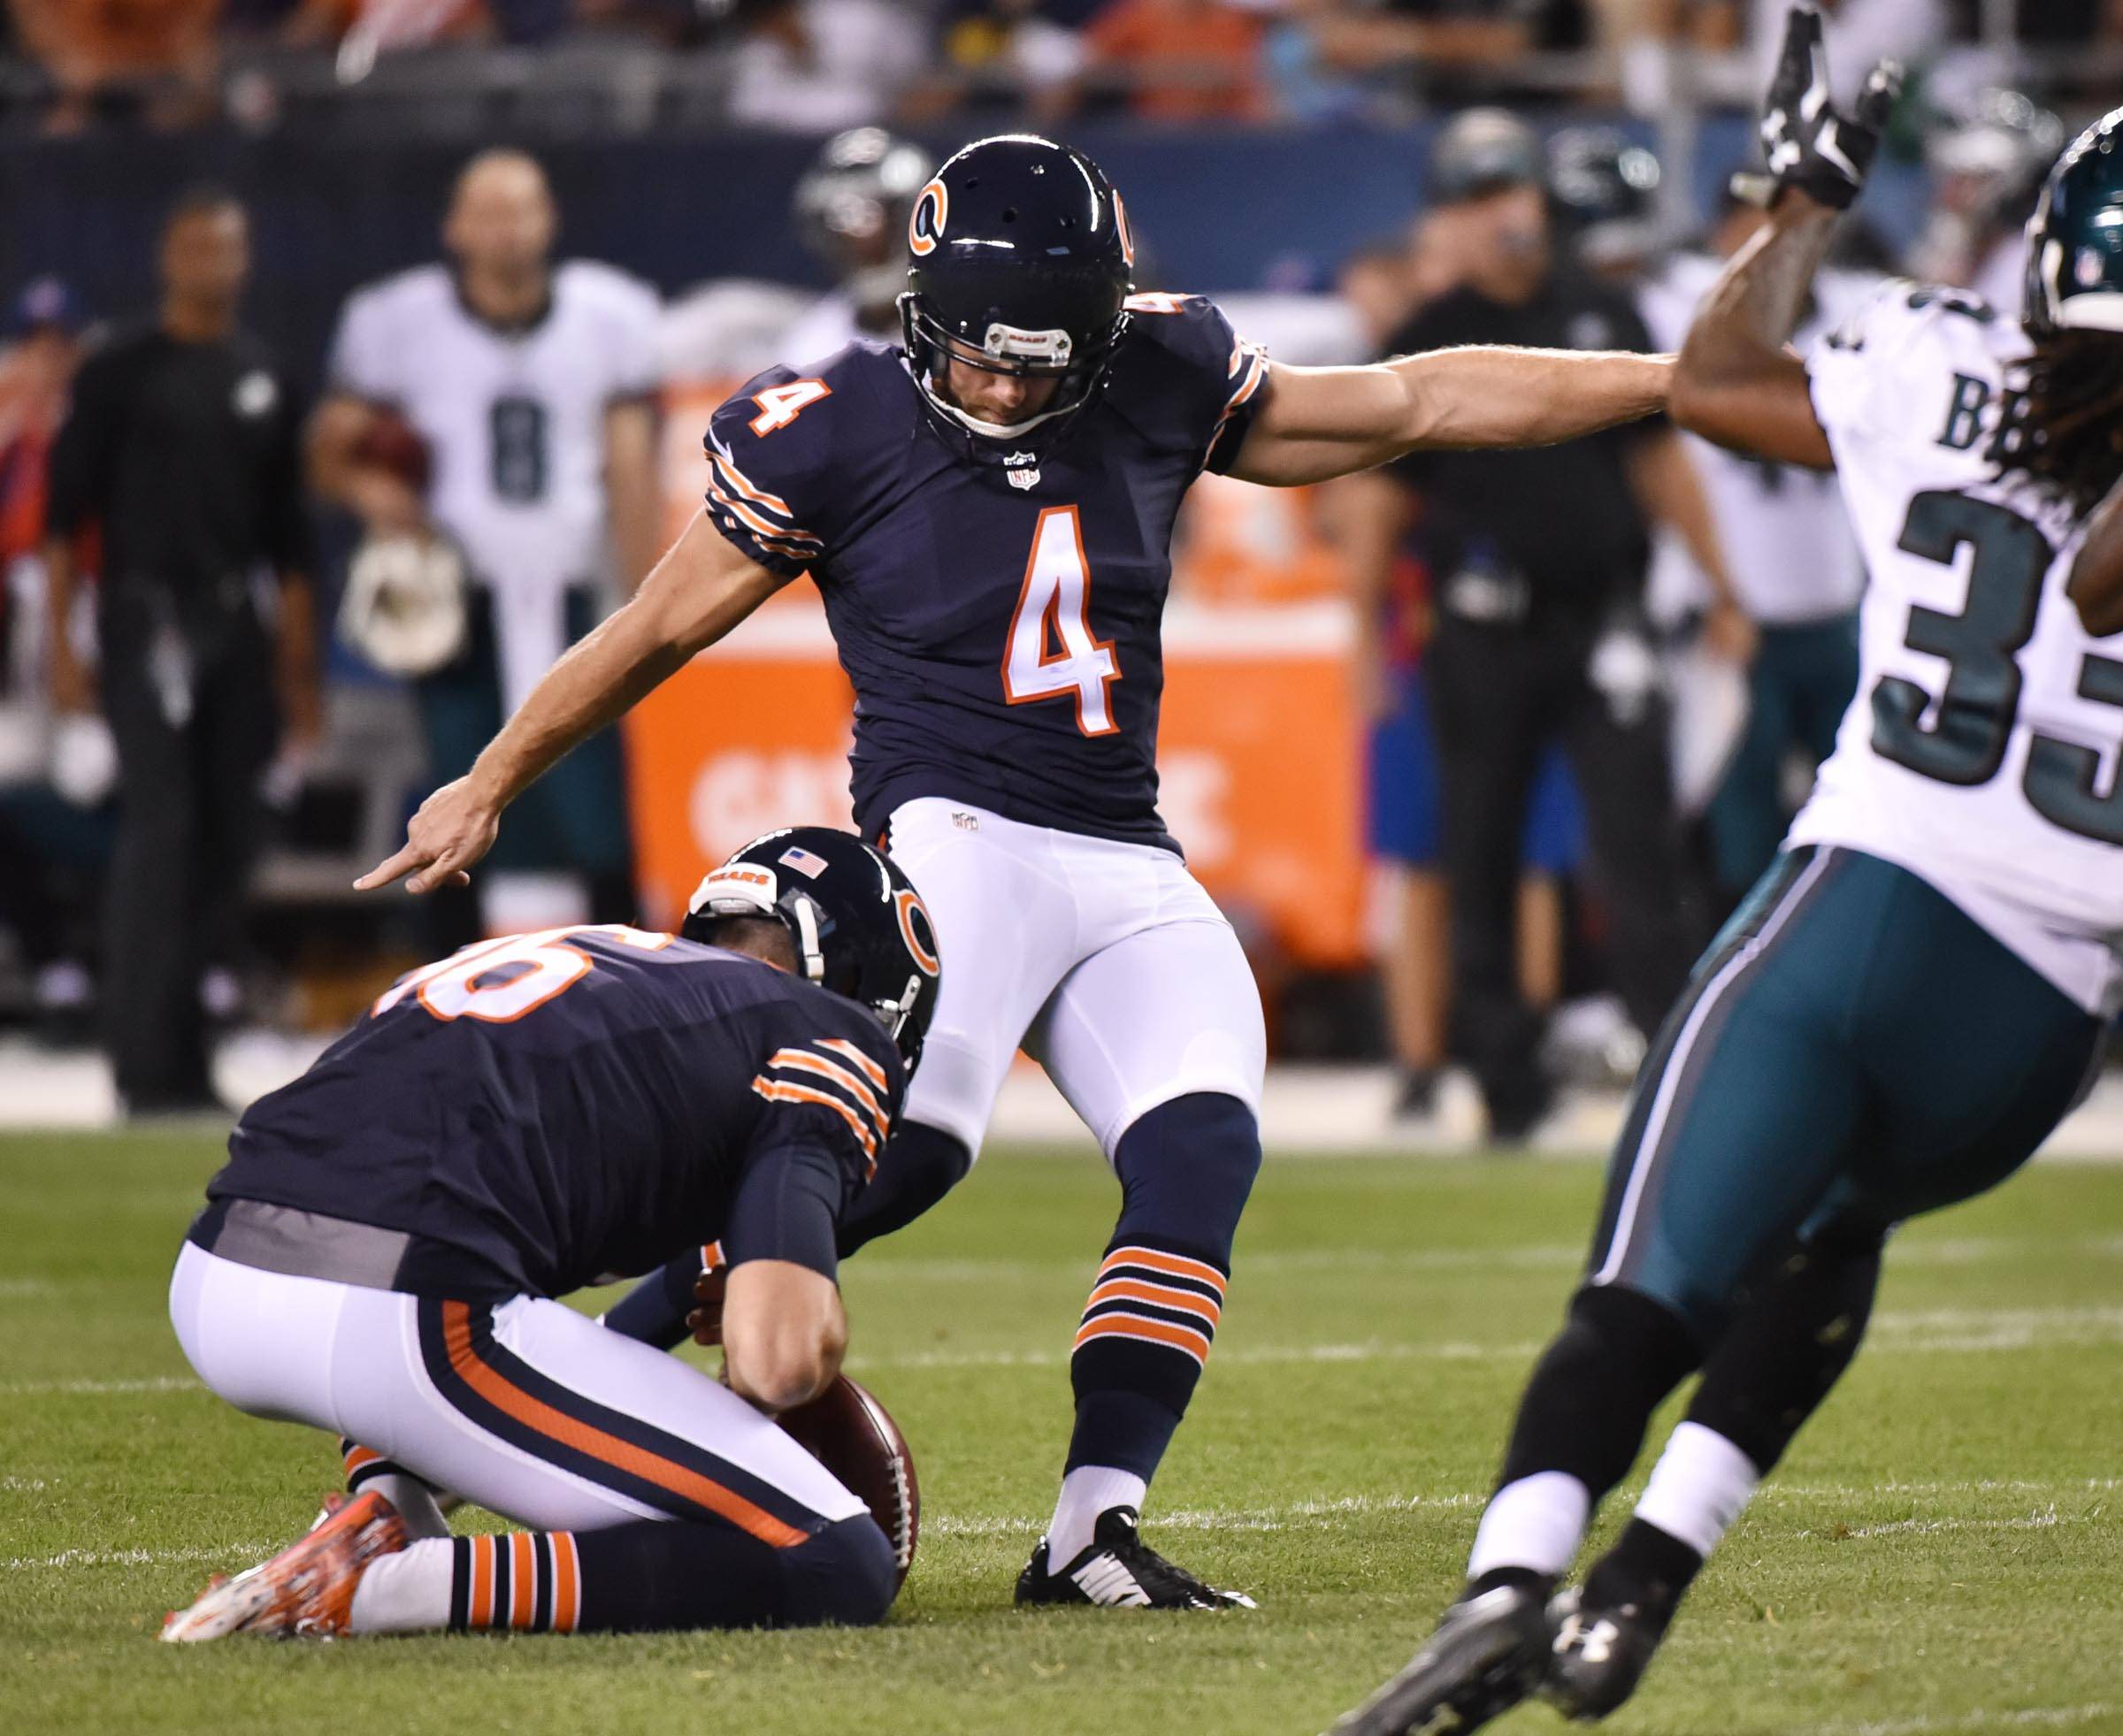 Chicago Bears kicker Connor Barth has officially agreed to a 1-year contract. In his first season with the Bears, Barth connected on 18 of 23 fields goals and 31 of 32 extra points.